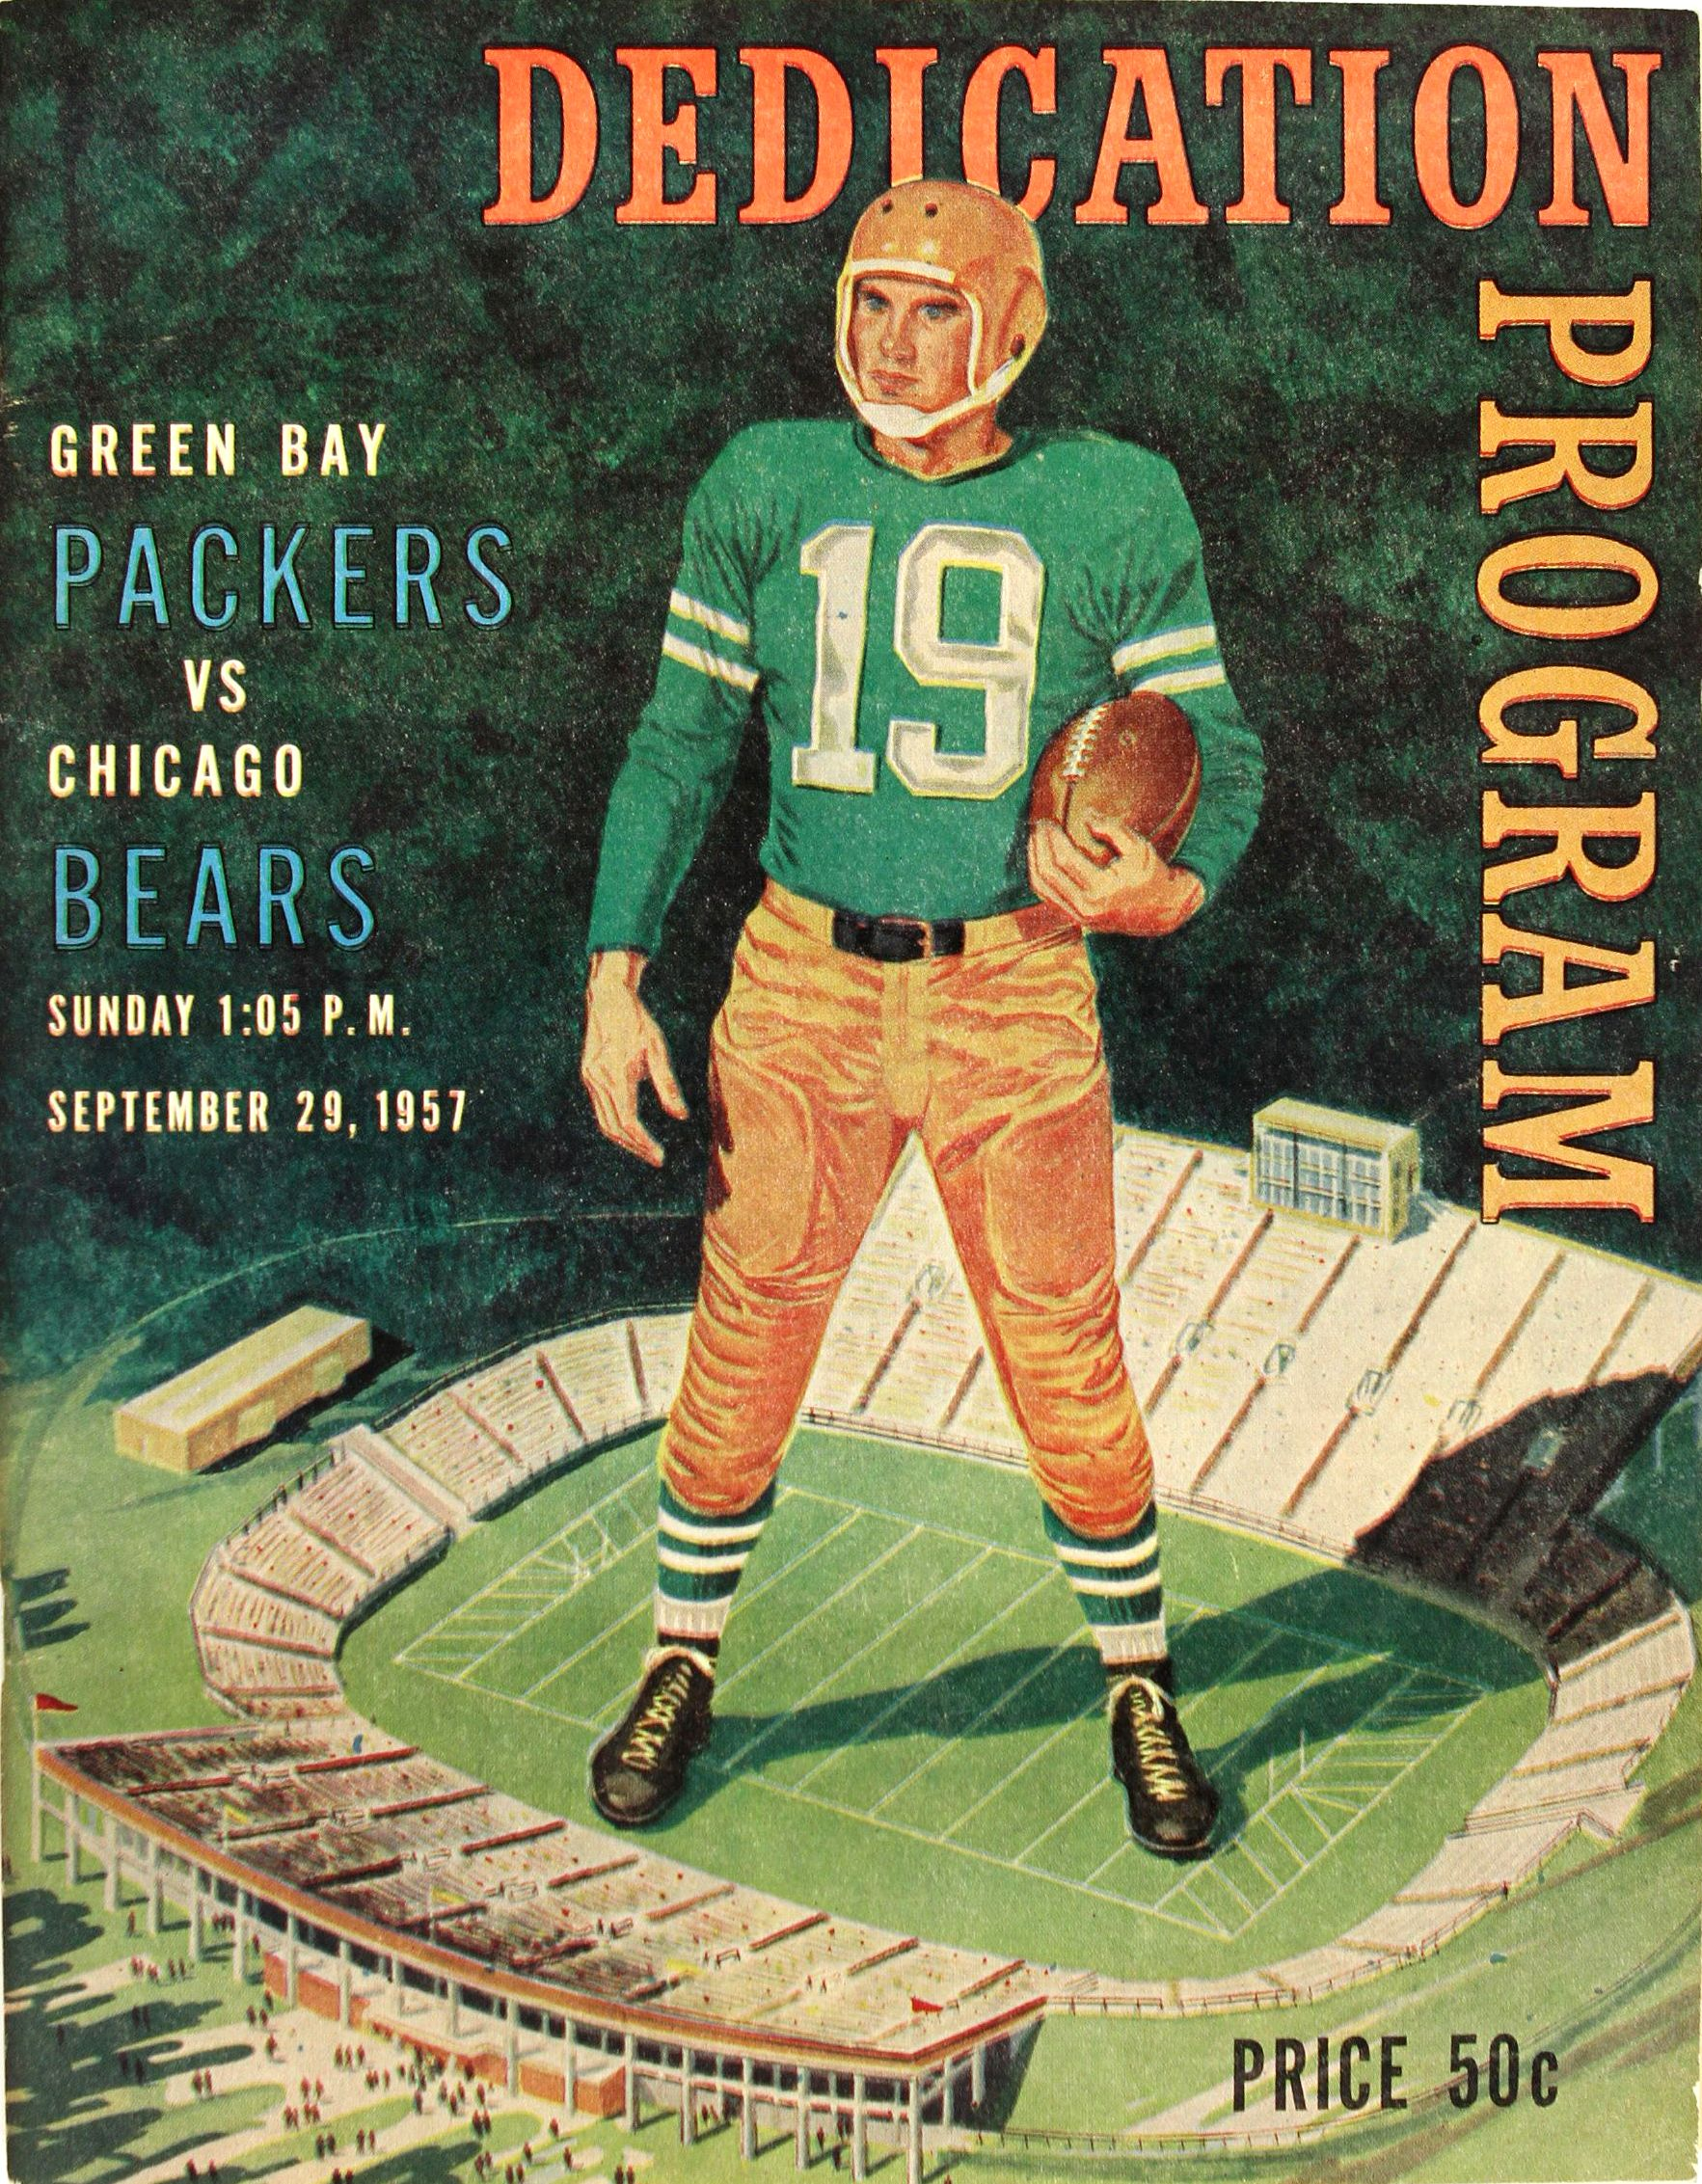 Packers Vs Bears 1957 Dedication Program Green Bay Packers Vs Chicago Bears Packers Green Bay